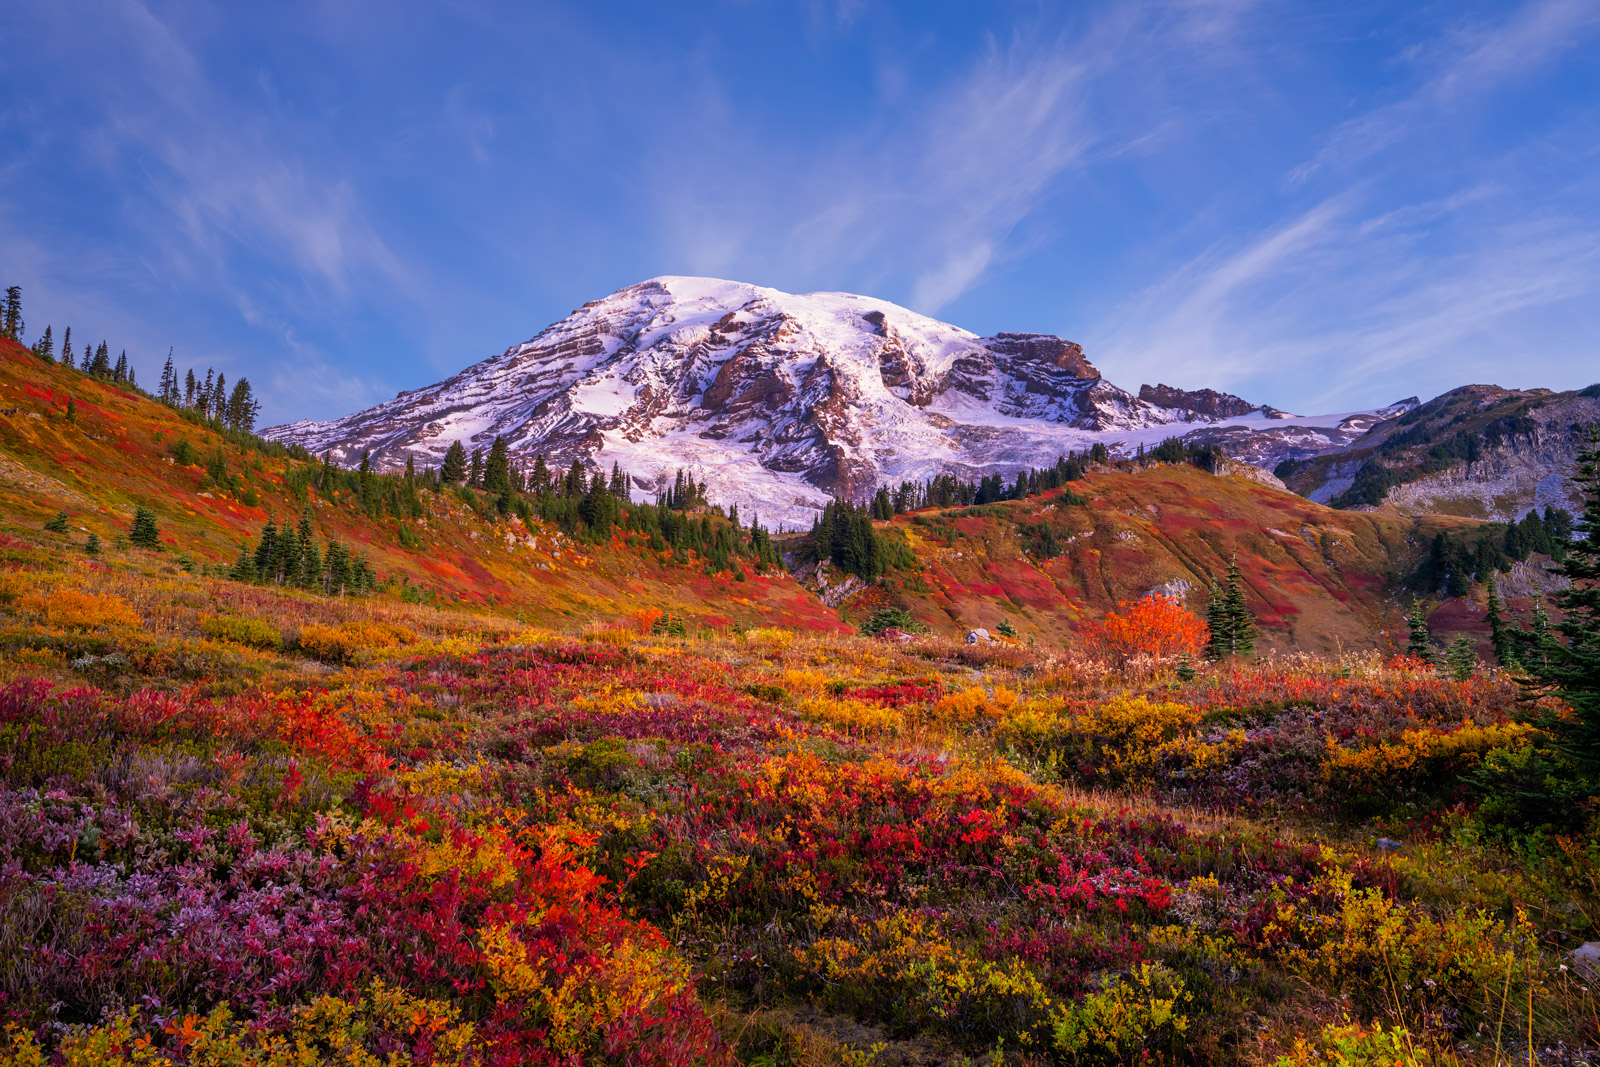 A Limited Edition, Fine Art photograph of brilliant fall colors in the field in front of Mount Rainier in Washington. Available...